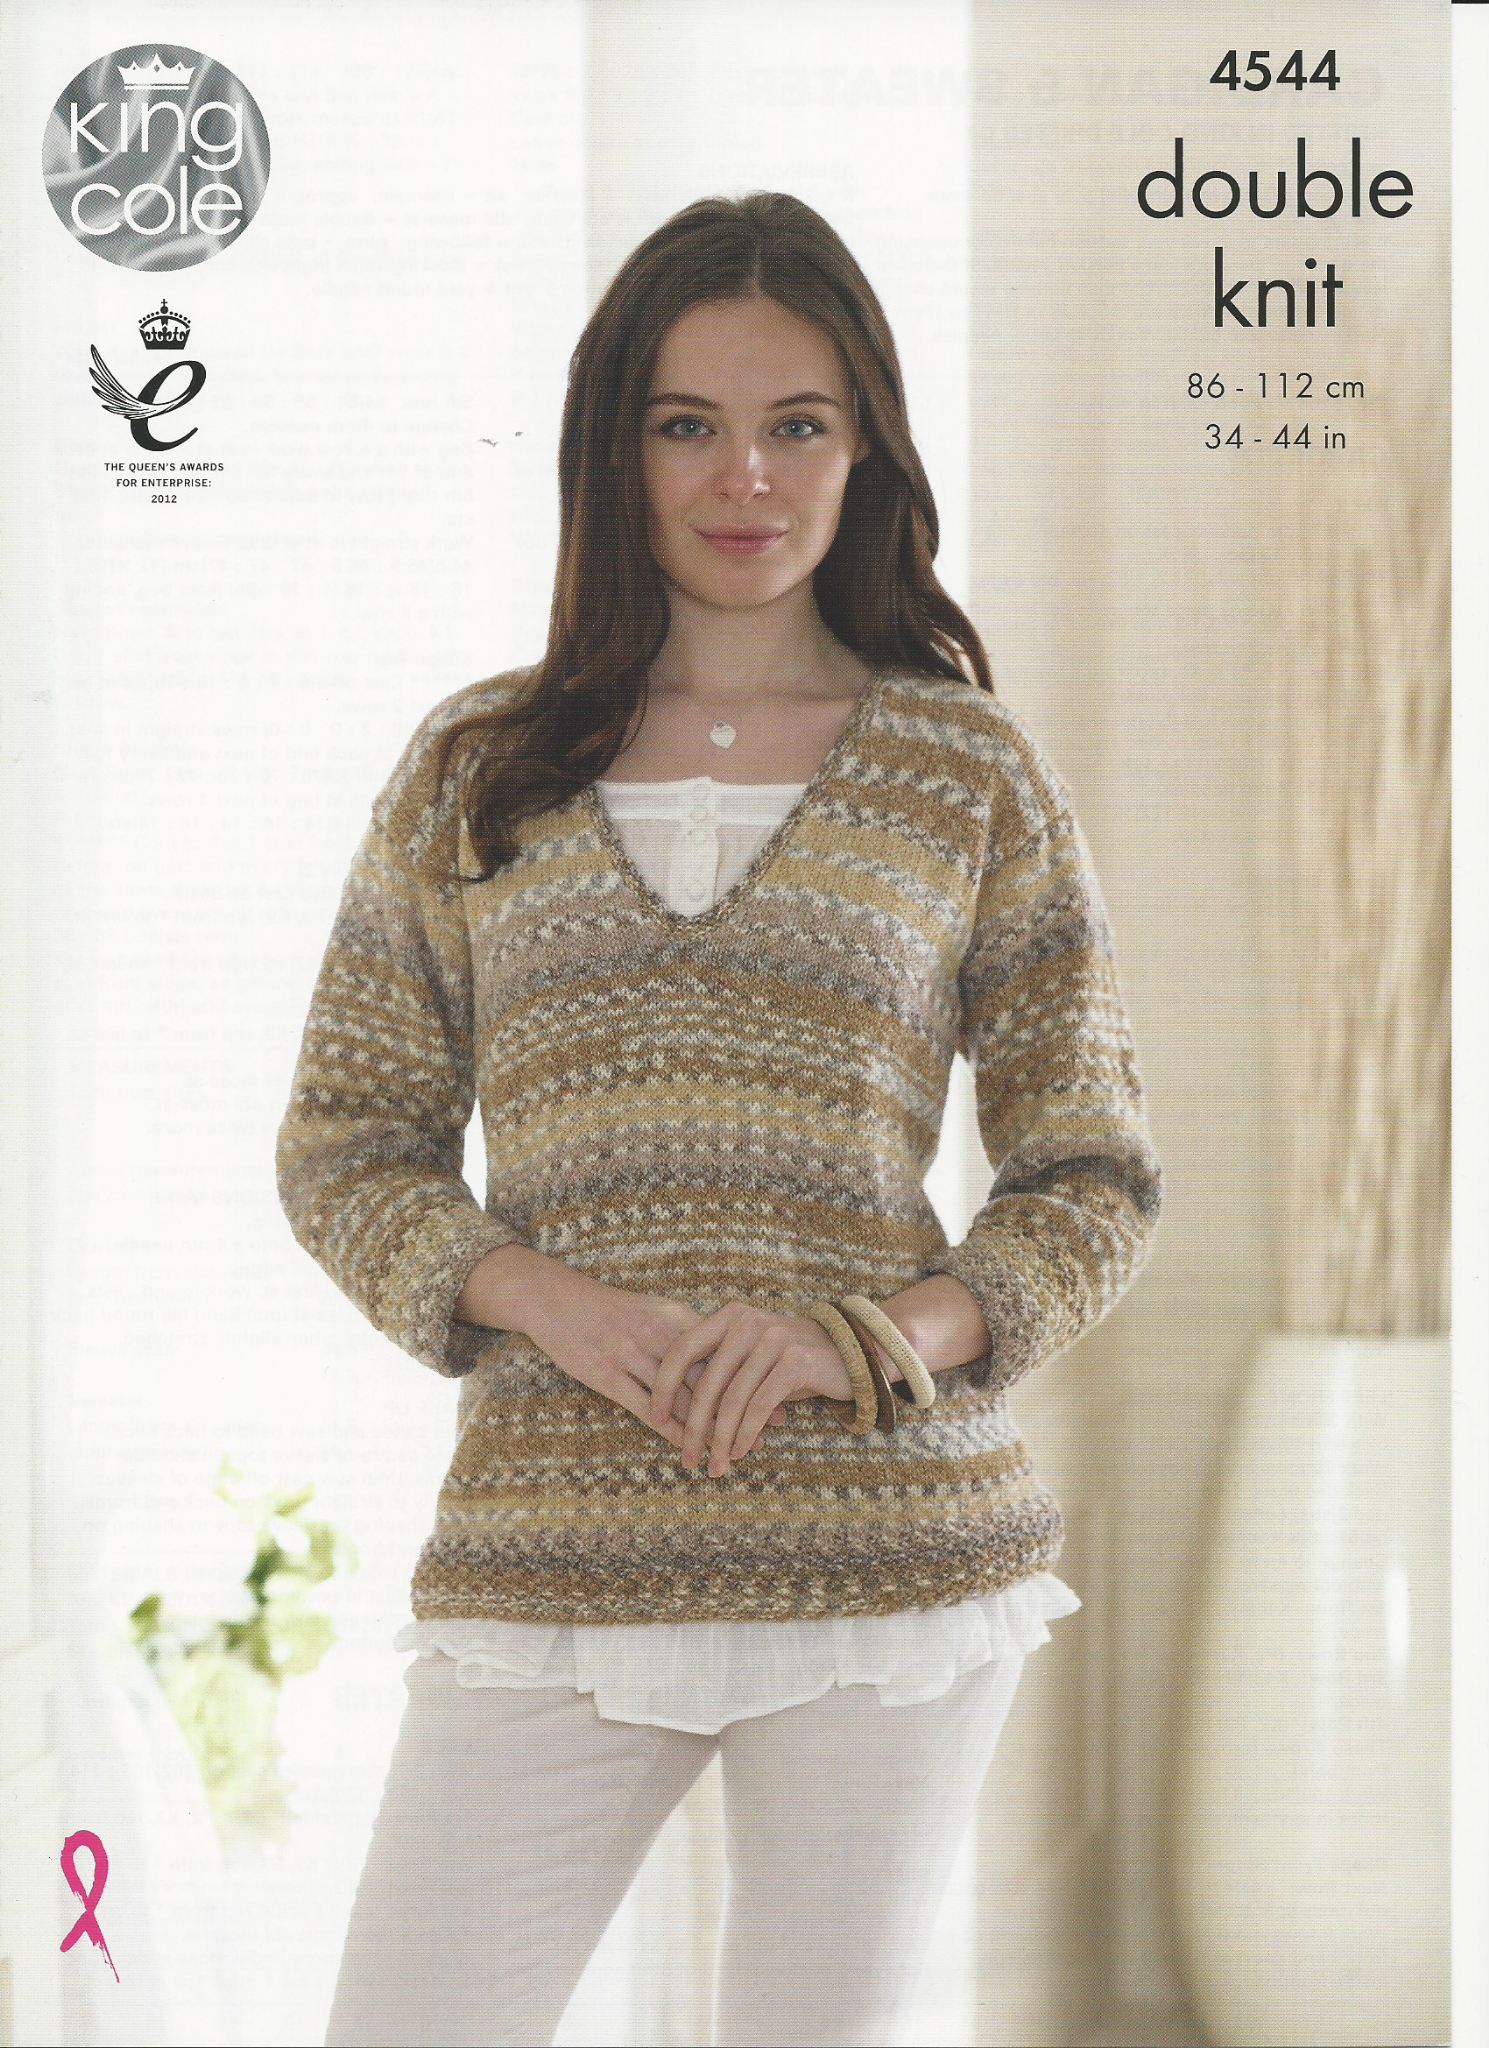 Cardigan Sweater Knitting Pattern King Cole Ladies Cardigan Sweater Knitting Pattern In Drifter Dk 4544